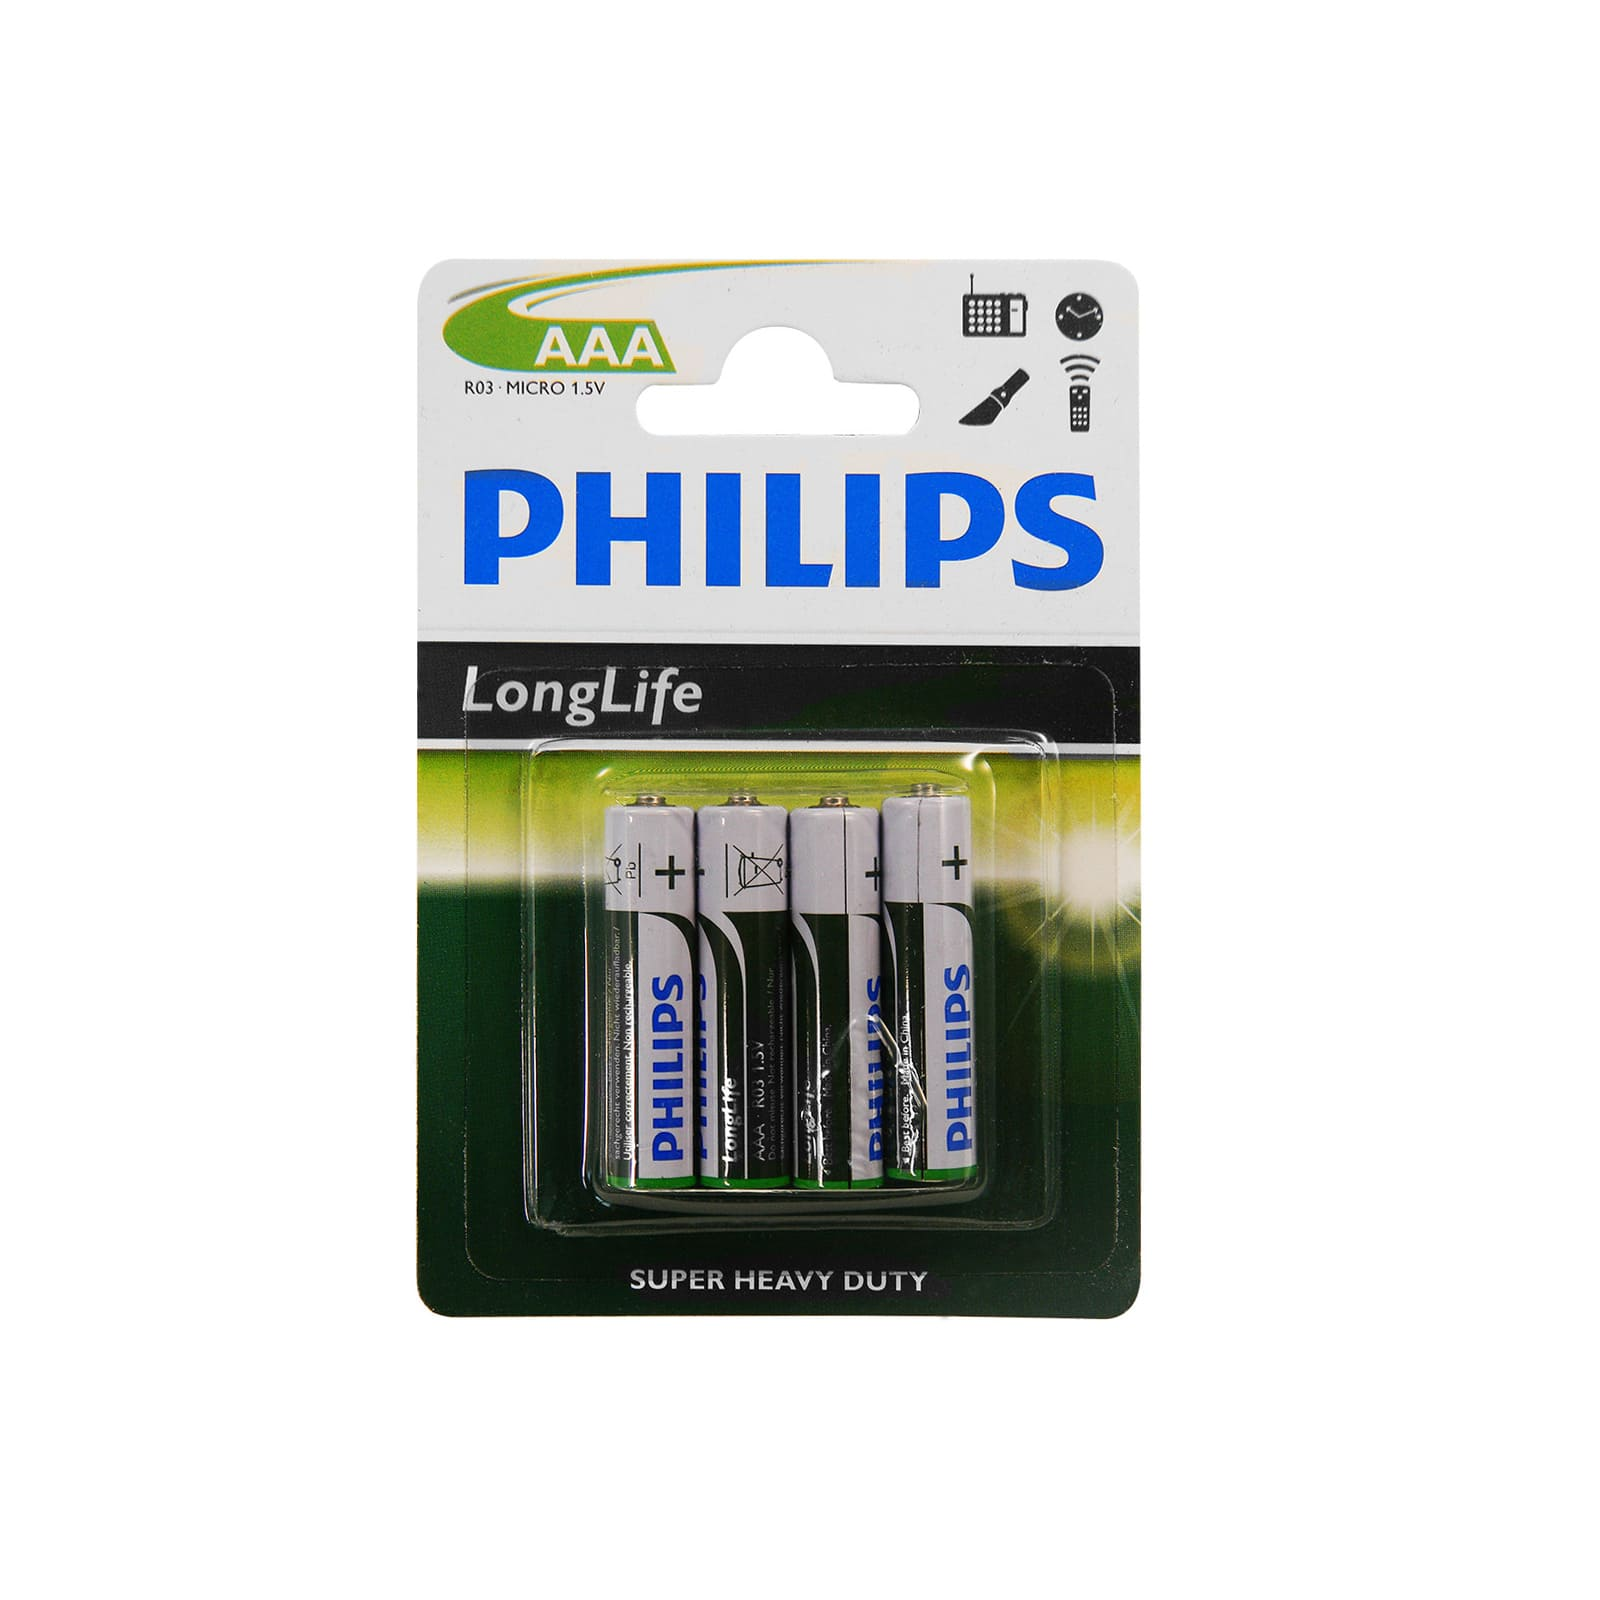 philips long life batterien 1 5 v r03 um4 aaa zink kohle f r verschiedene ger te. Black Bedroom Furniture Sets. Home Design Ideas